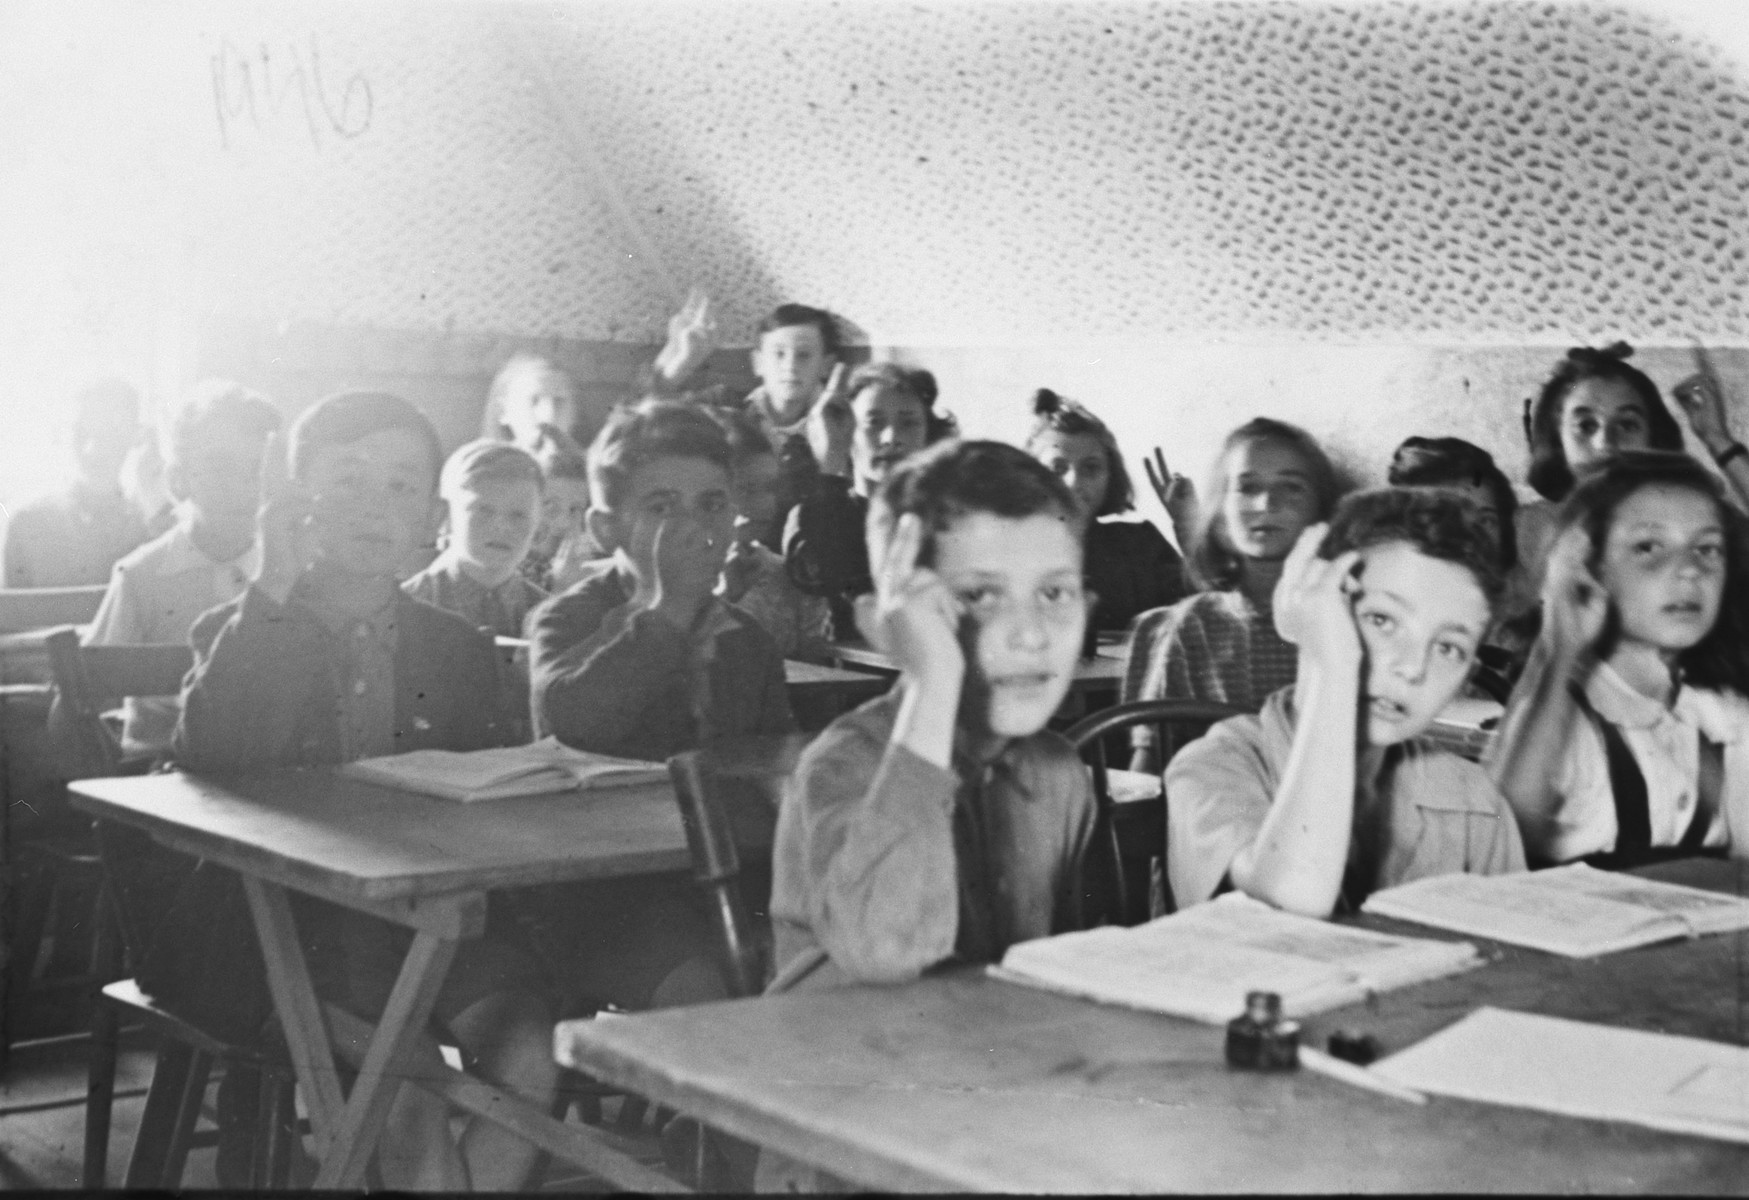 Children sit at their desks and raise their hands in a school in the Suttgart displaced persons' camp.  Lova Warszawczyk is pictured in the second row, on the left.